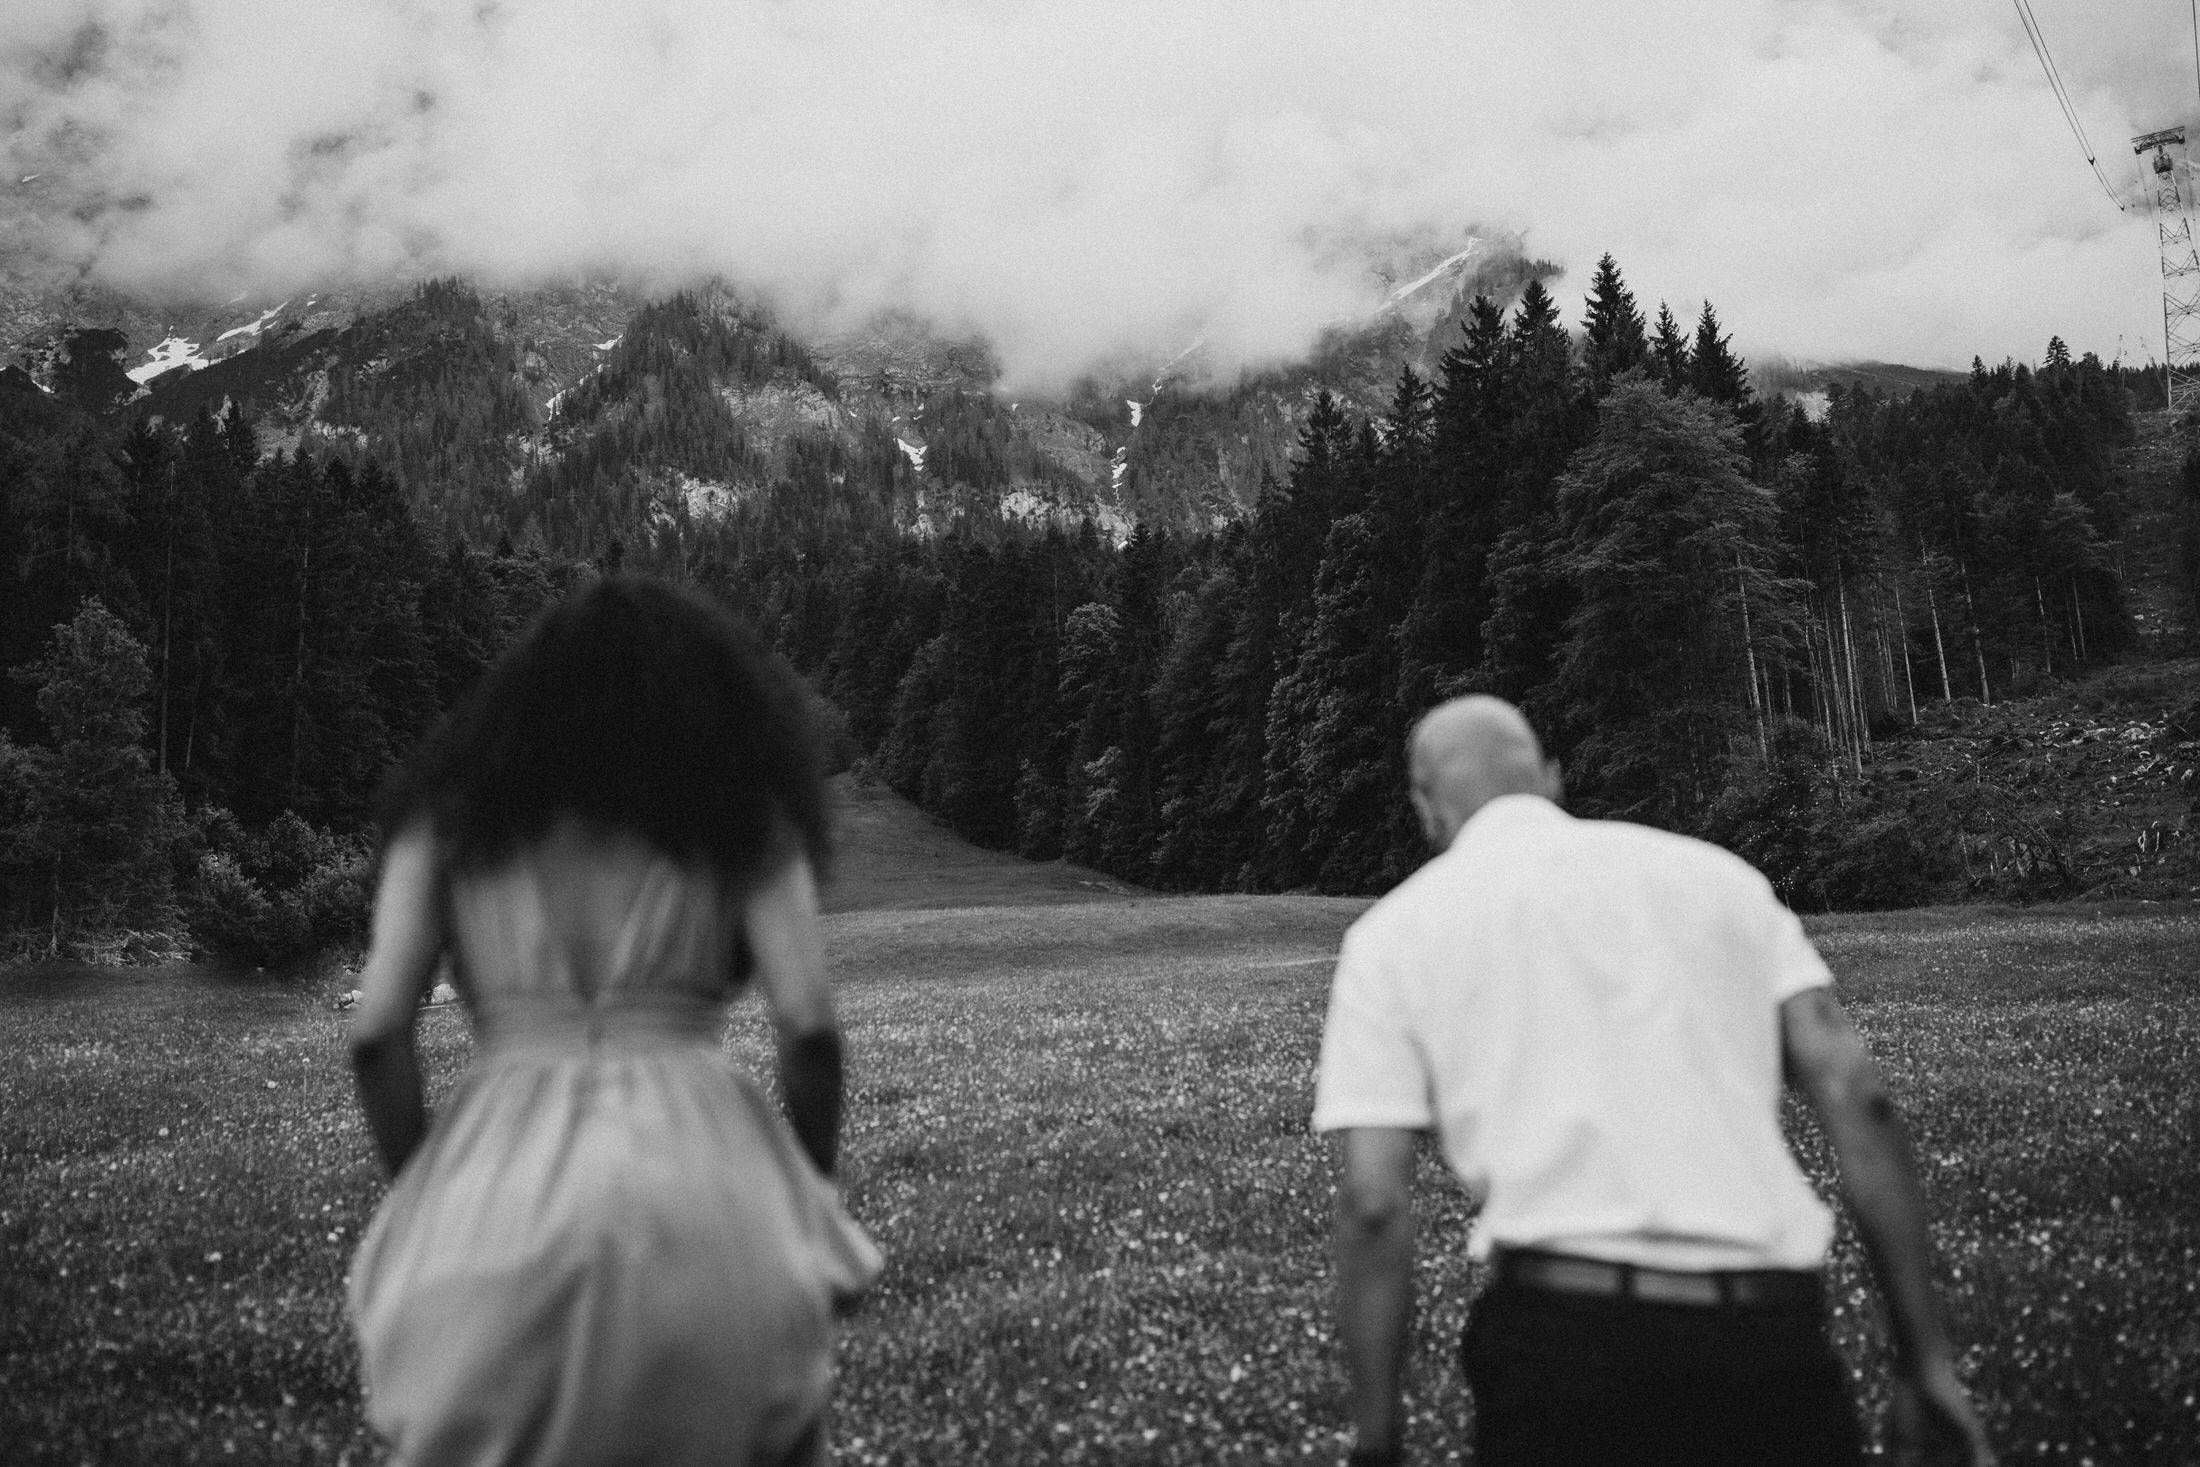 breanna-and-justin-engagement-photos-eibsee-garmisch-partenkirchen-0001